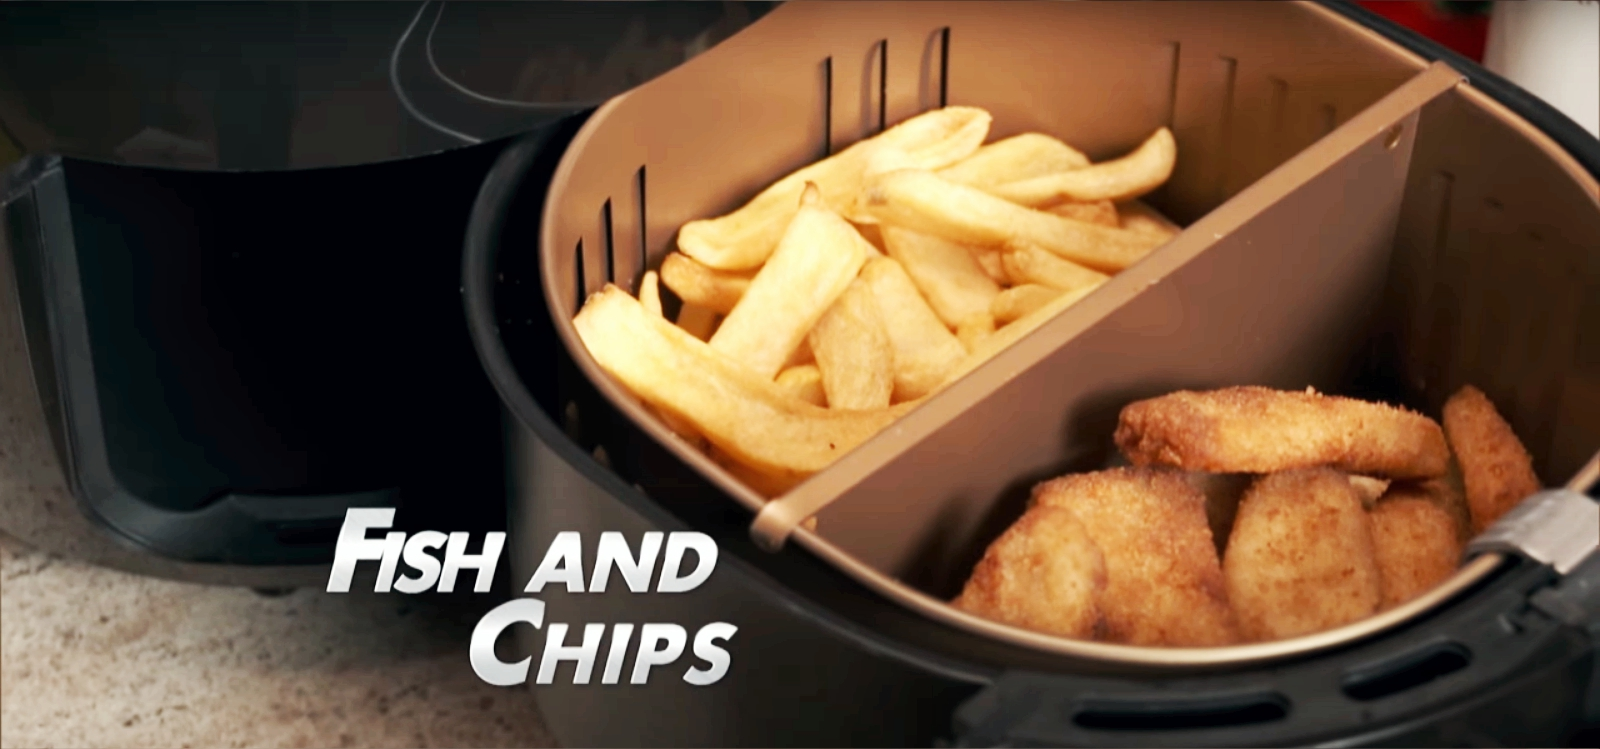 fish and chips made from power air fryer